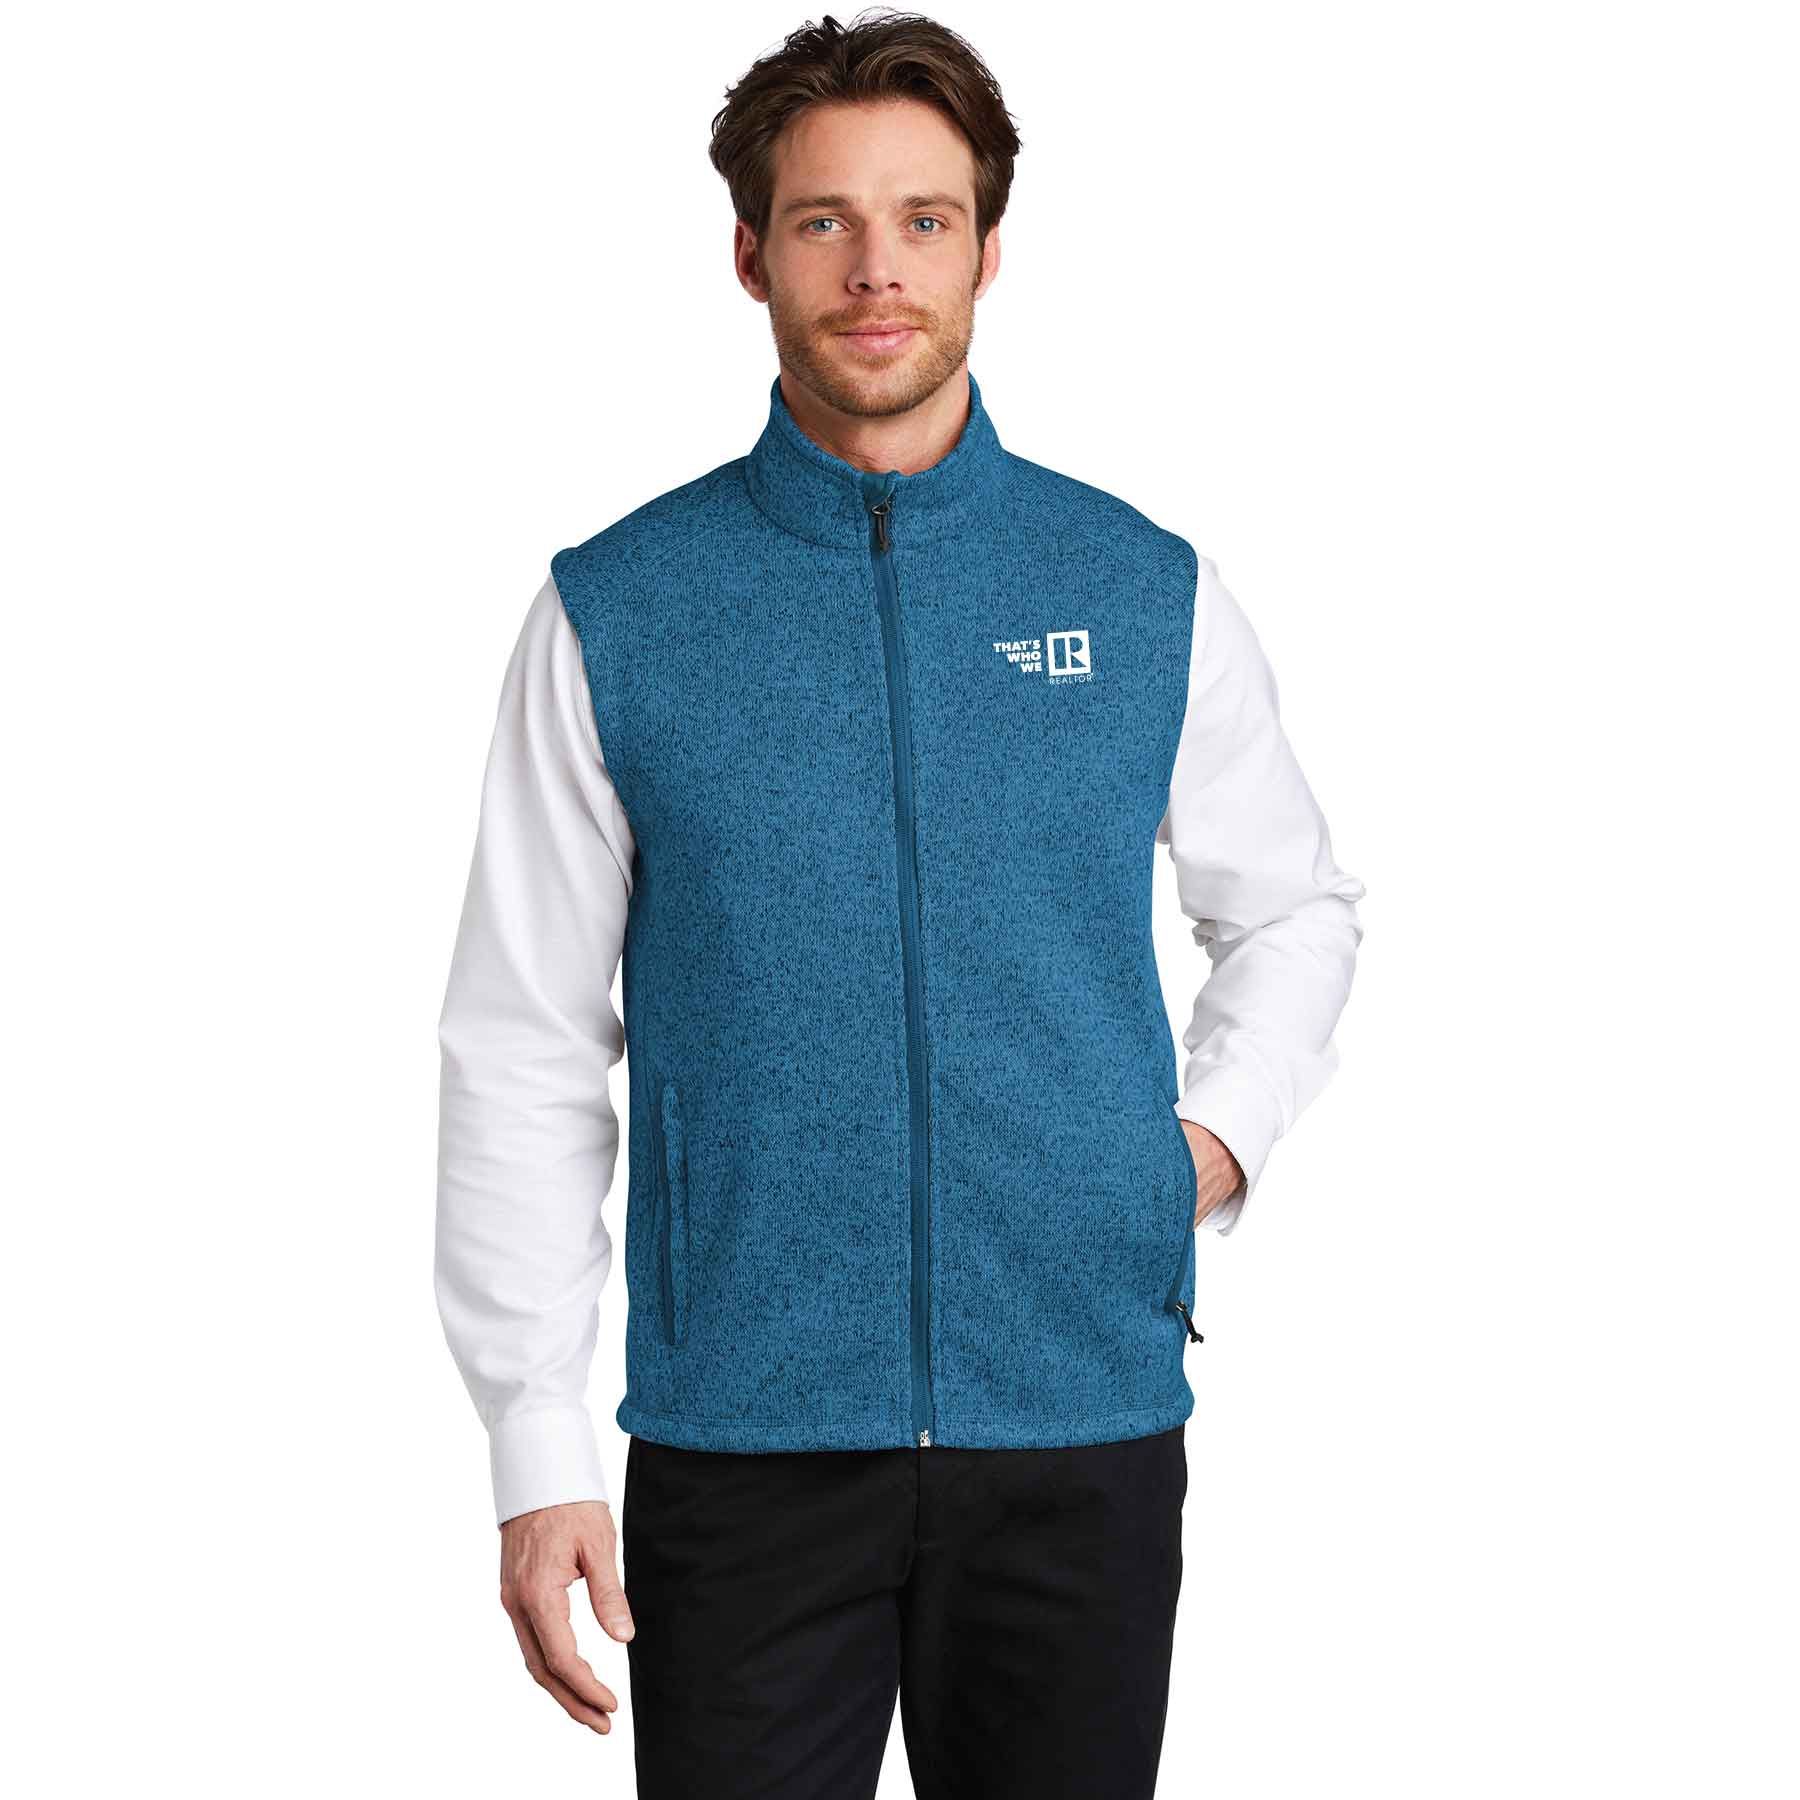 """That's Who We R"" Men's Sweater Vest twwr,ThatsWhoWeR,That's,TWWR,ThatWho,That'sWho,Twwr,Thats,Whos,We,Ares,Twwr,Thats,Whos,Wes,Ares,soft, shells, vests, mens"